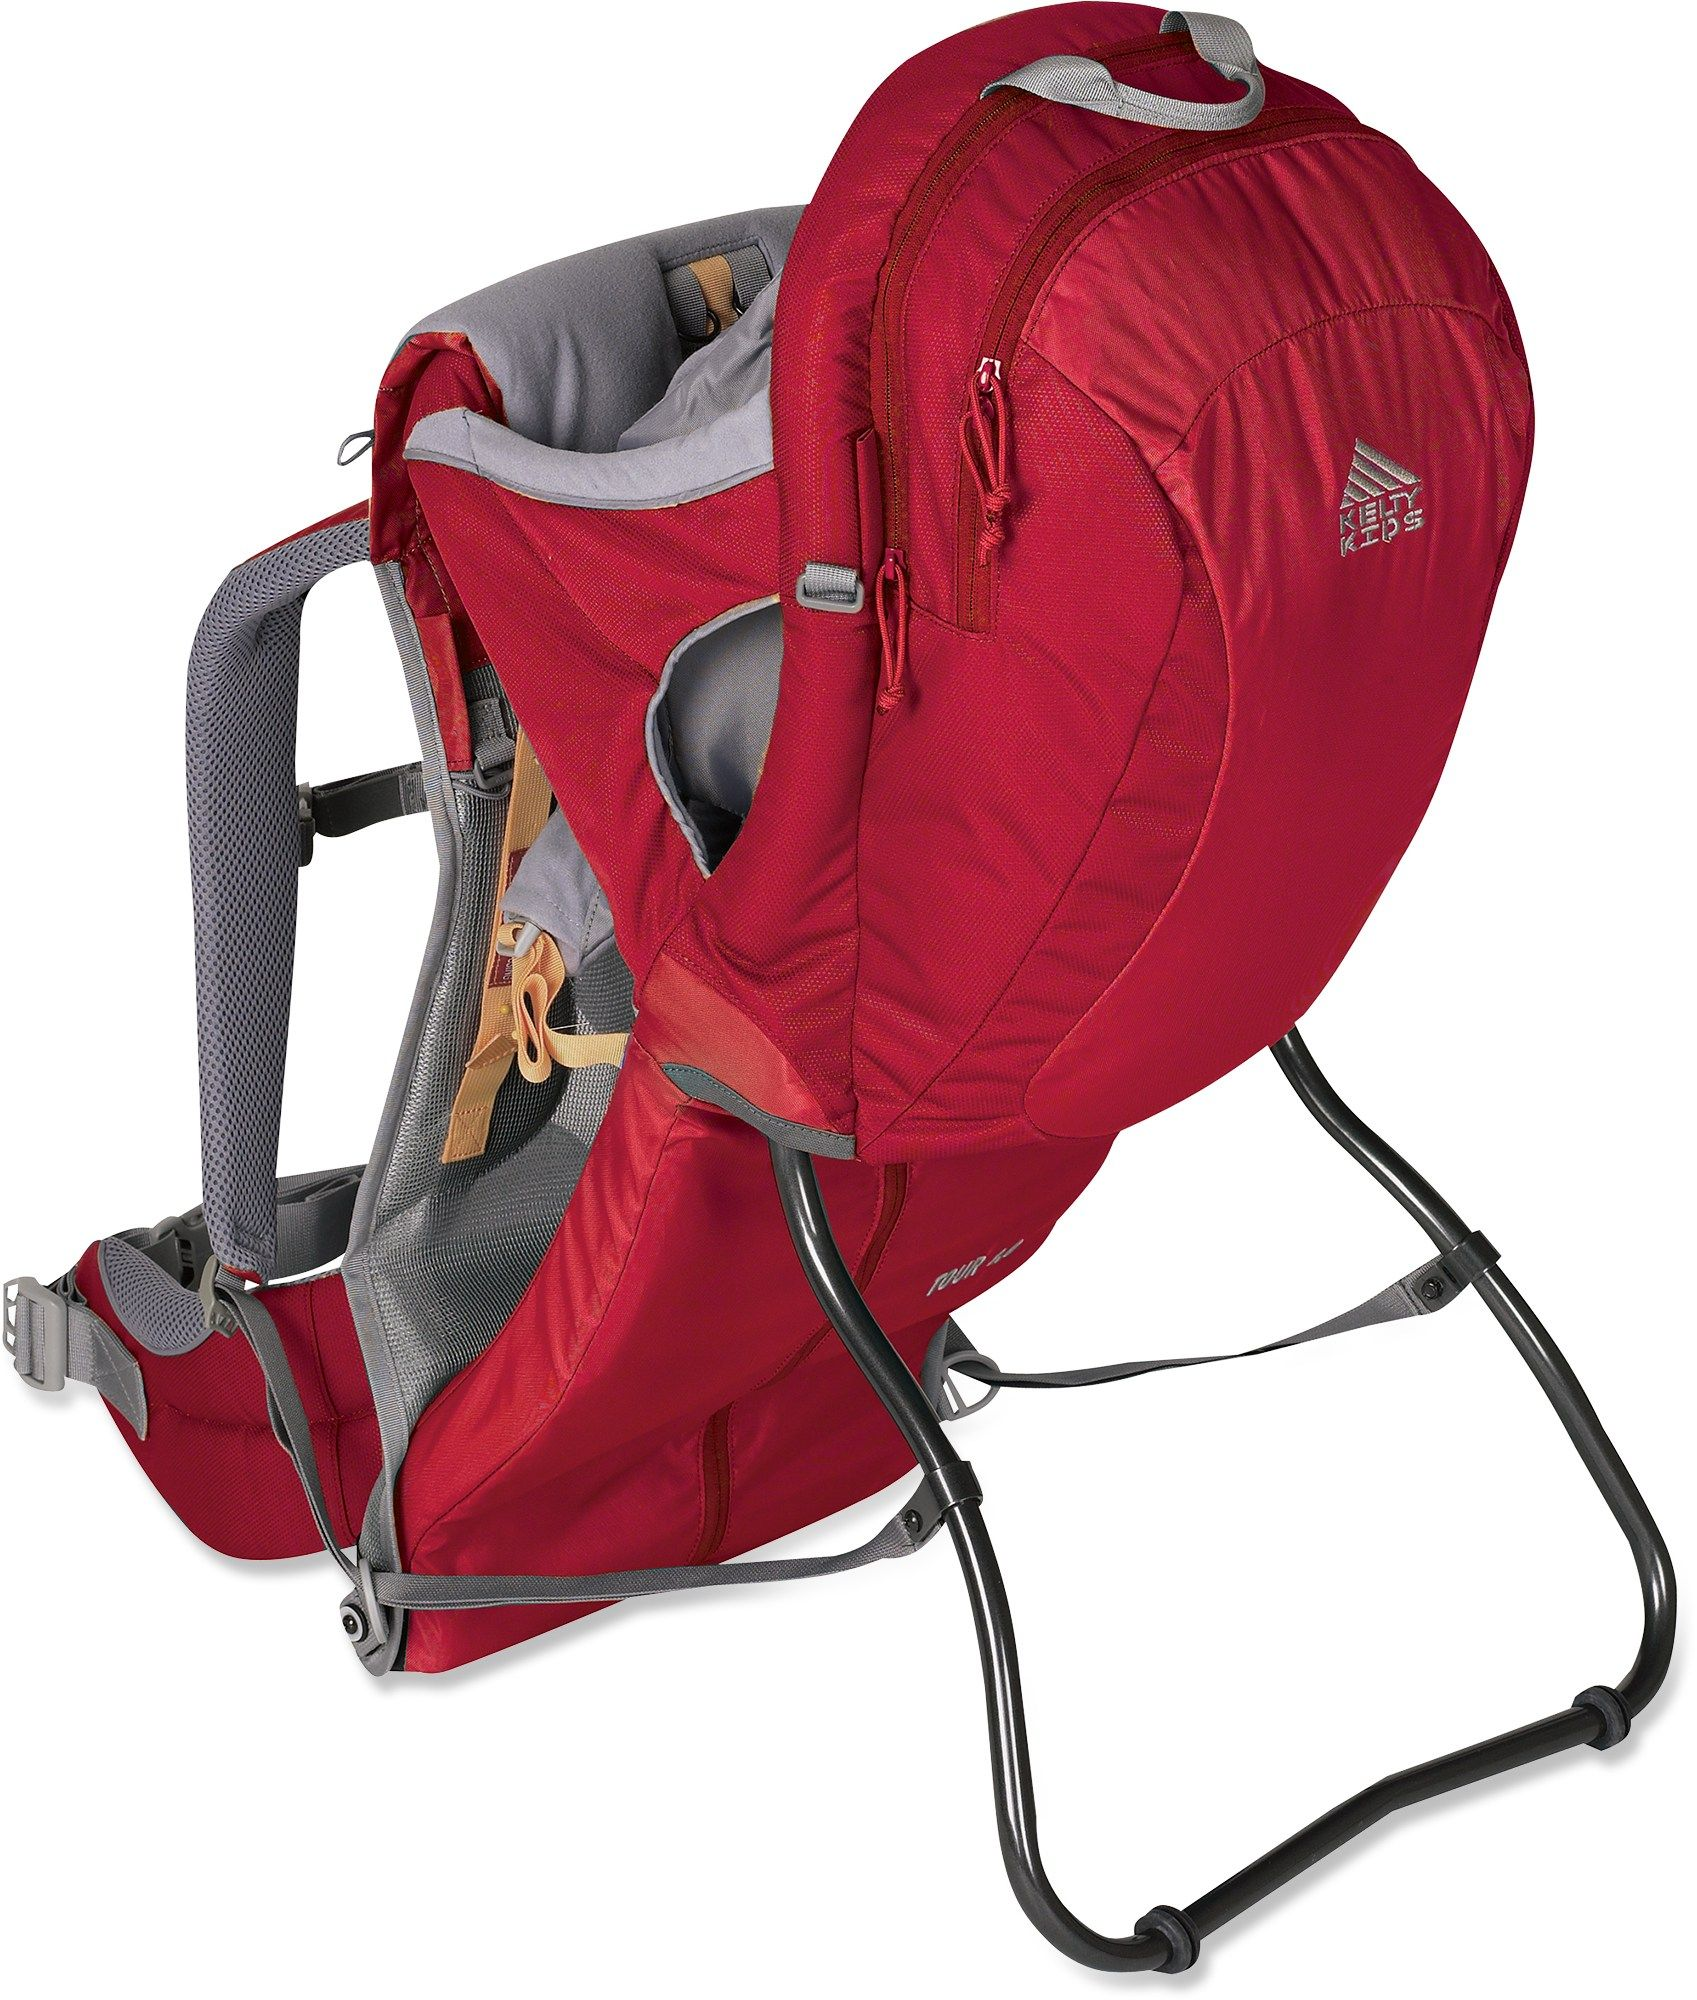 3cadf26d79e REI Backpack child carrier